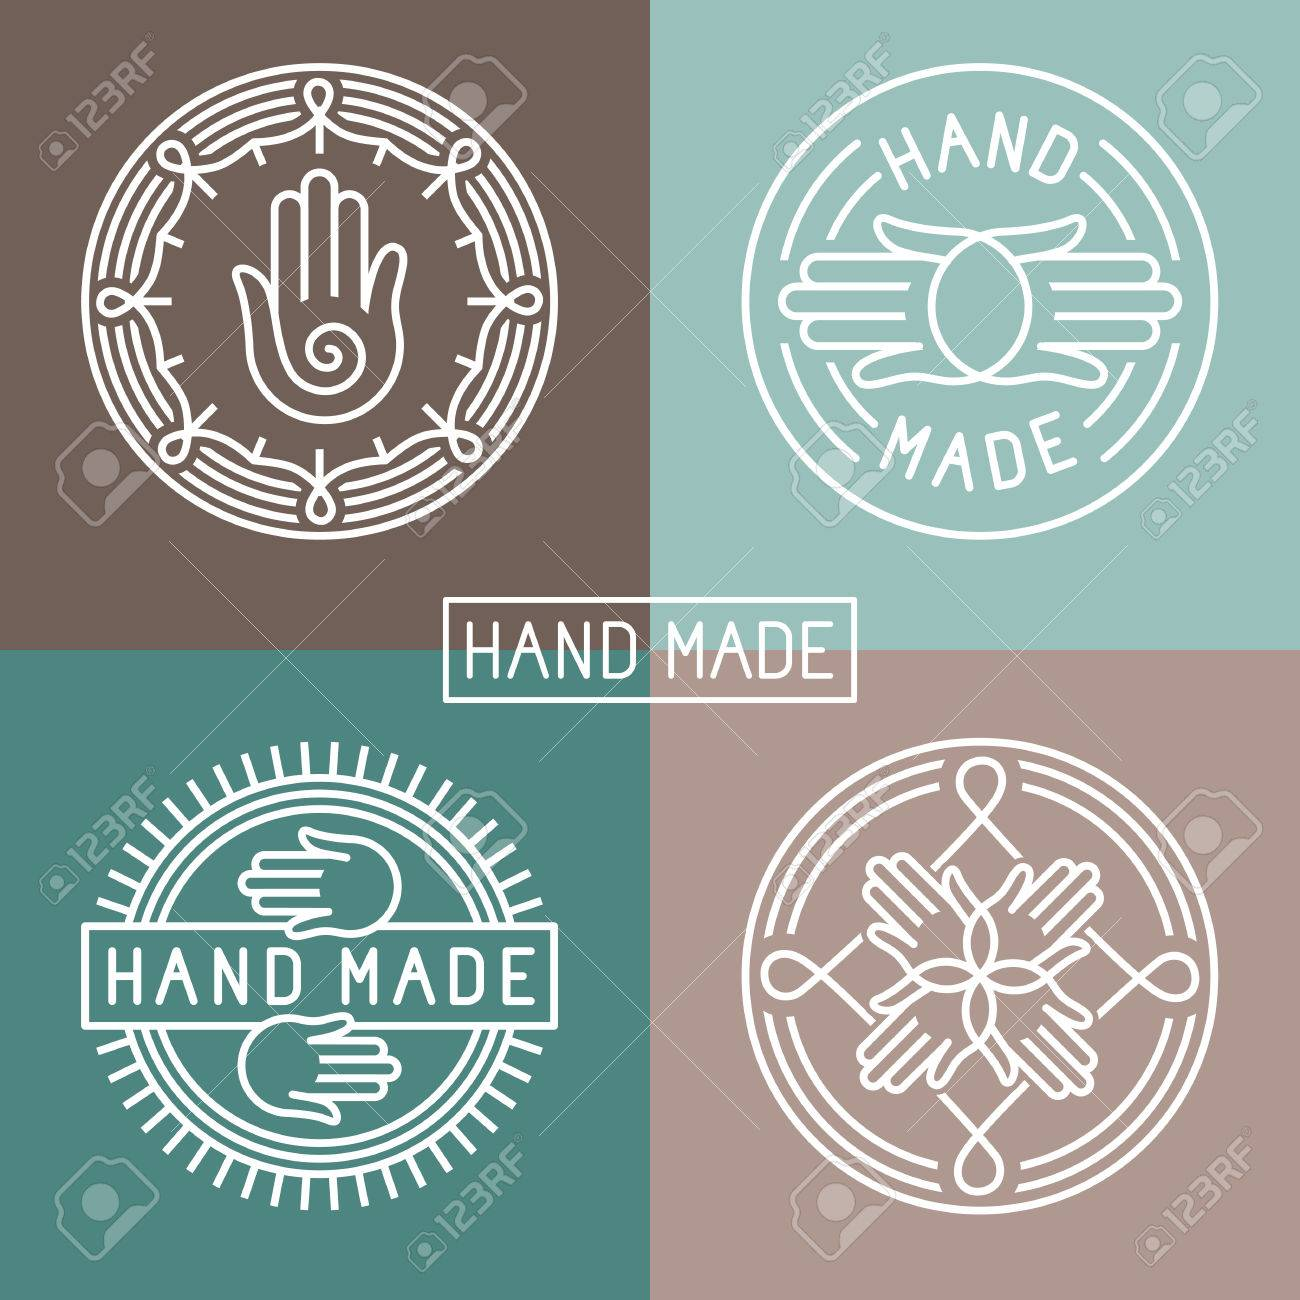 hand made label in outline trendy style - hands icon and text - 29100096